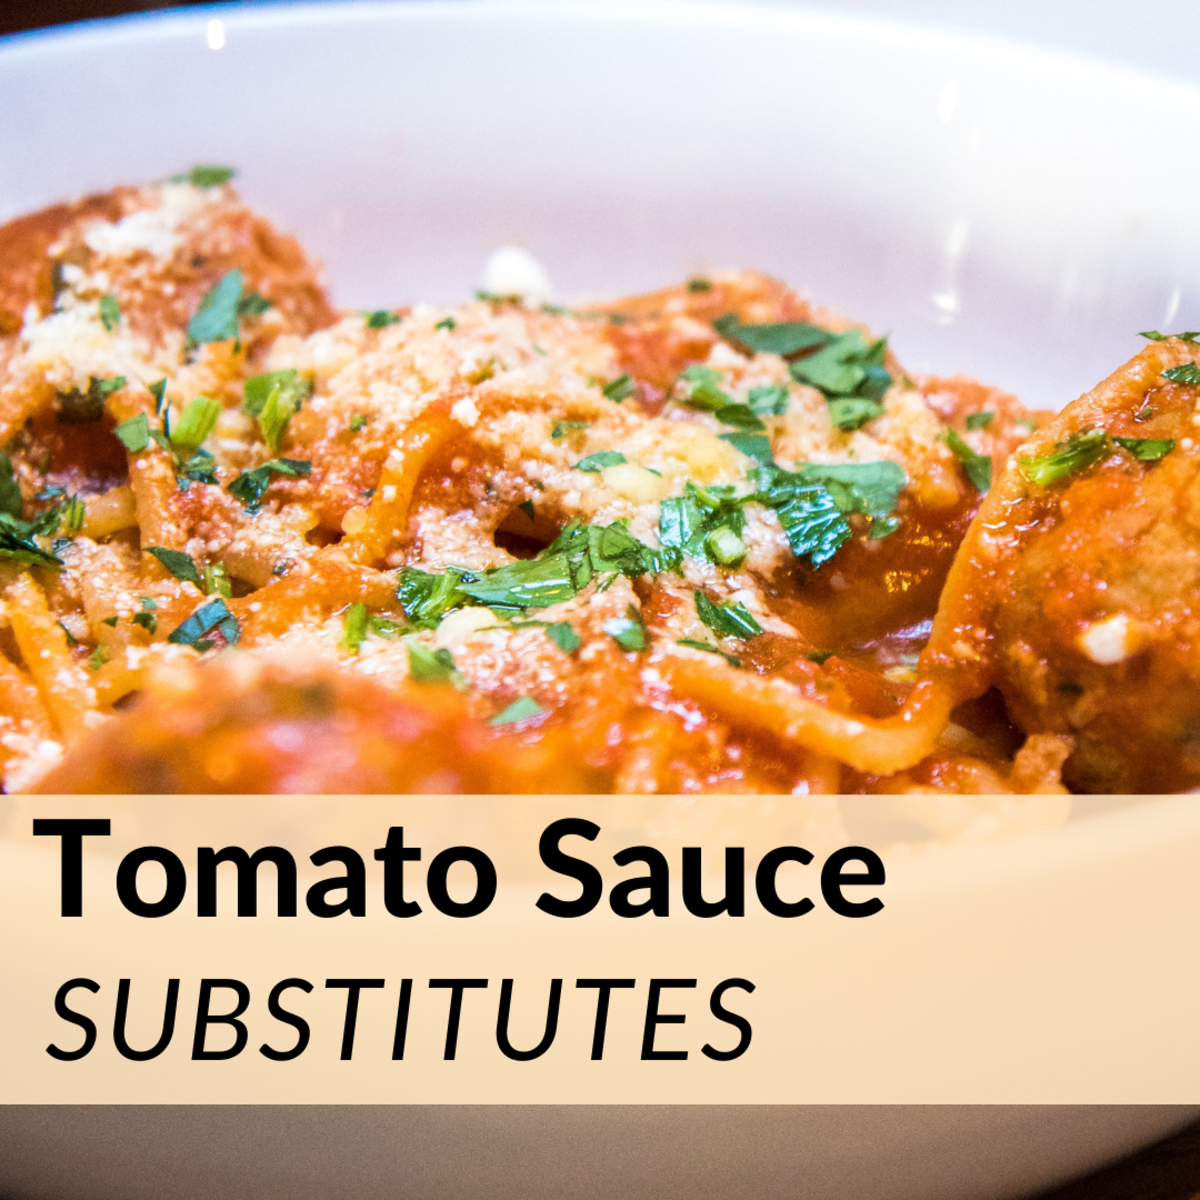 Meatball Sauce Without Tomato Using Butternut Squash and Substitutes